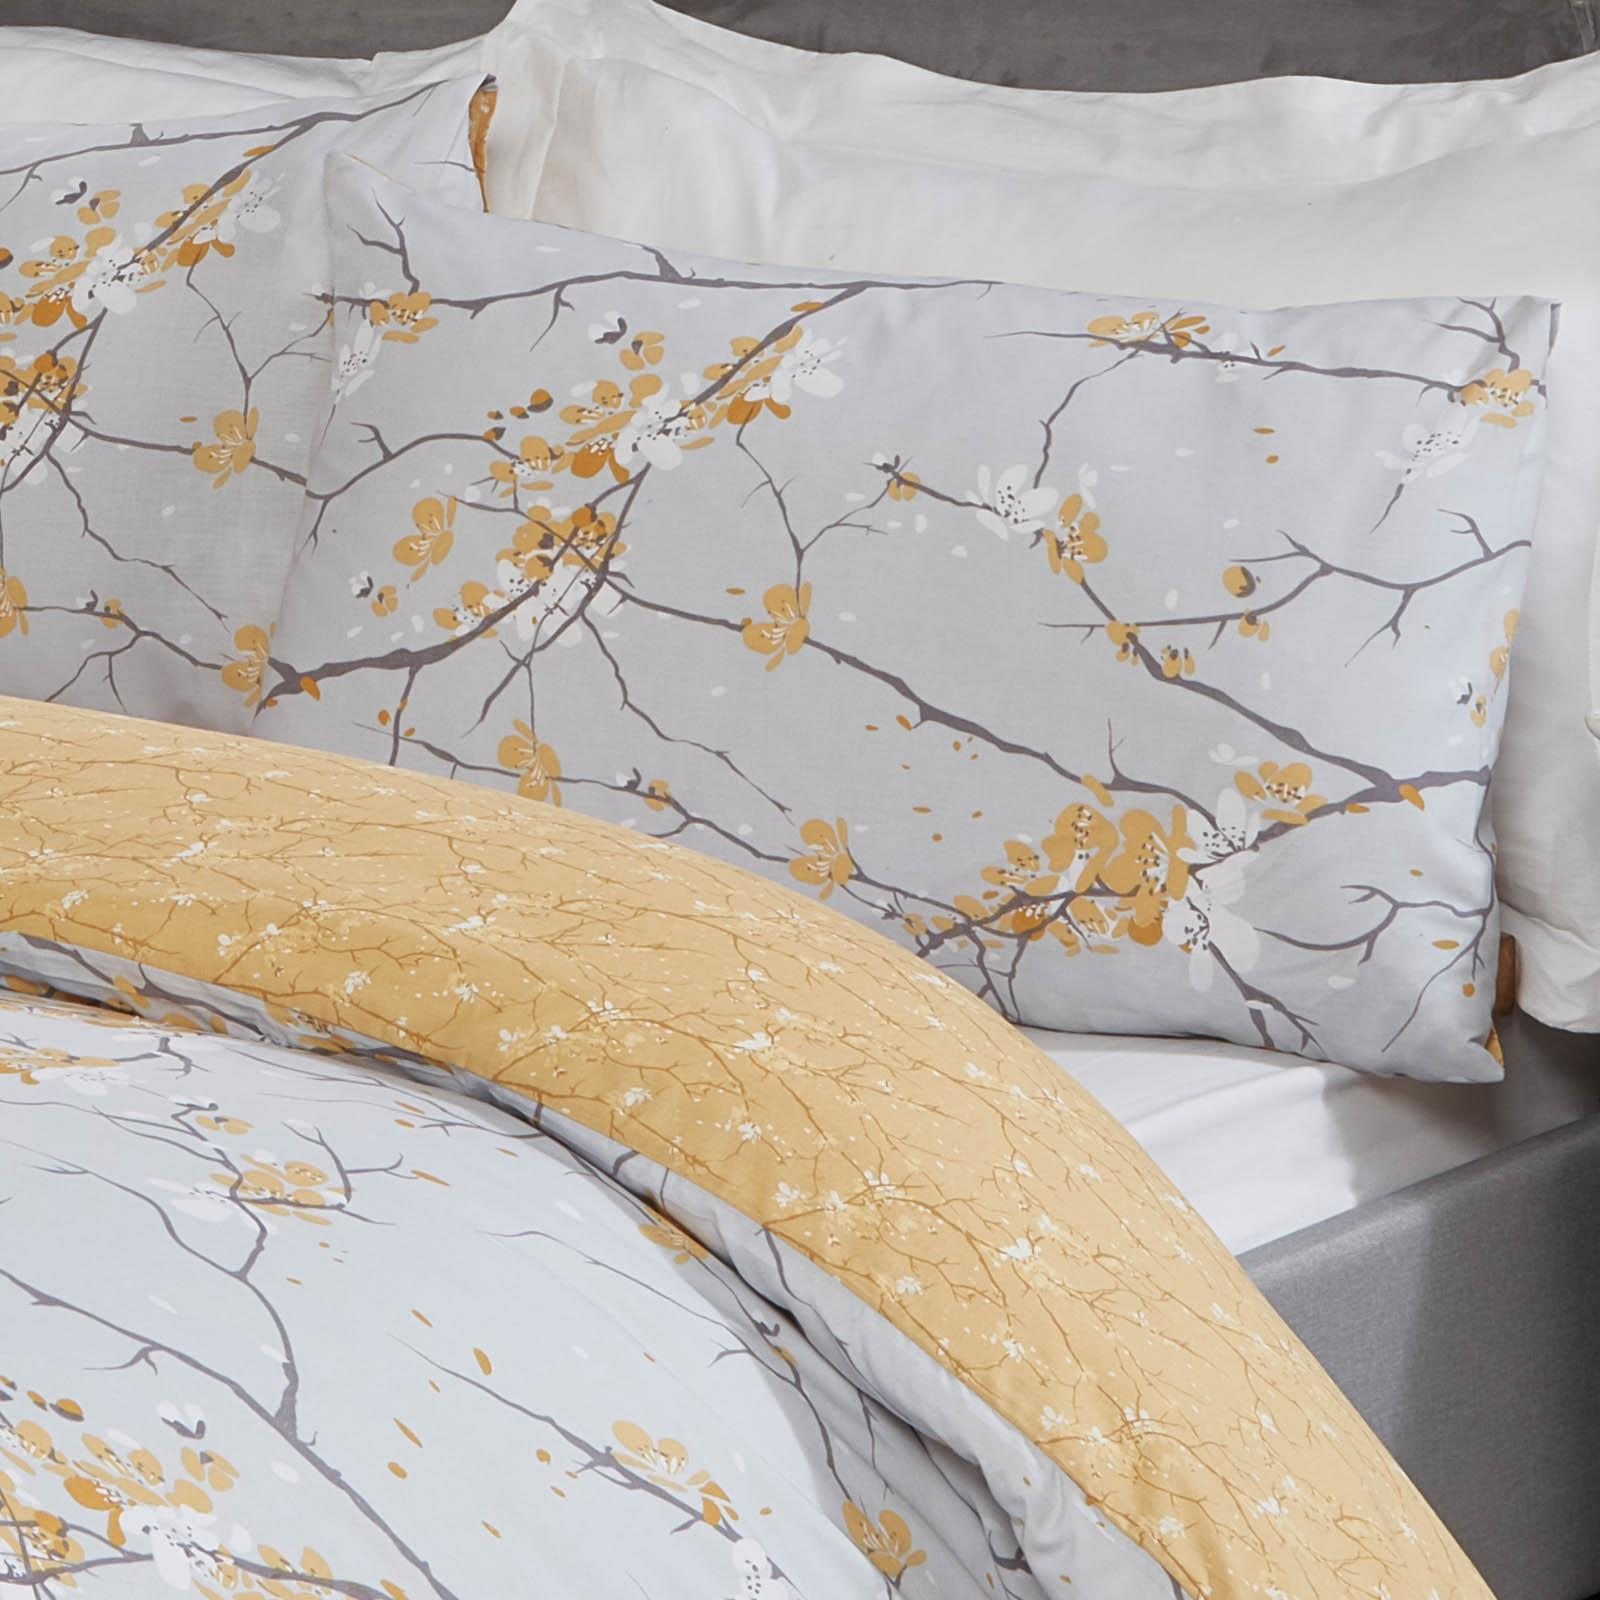 thumbnail 18 - Dreamscene Spring Blossoms Duvet Cover with Pillowcases Bedding Set Blush Ochre